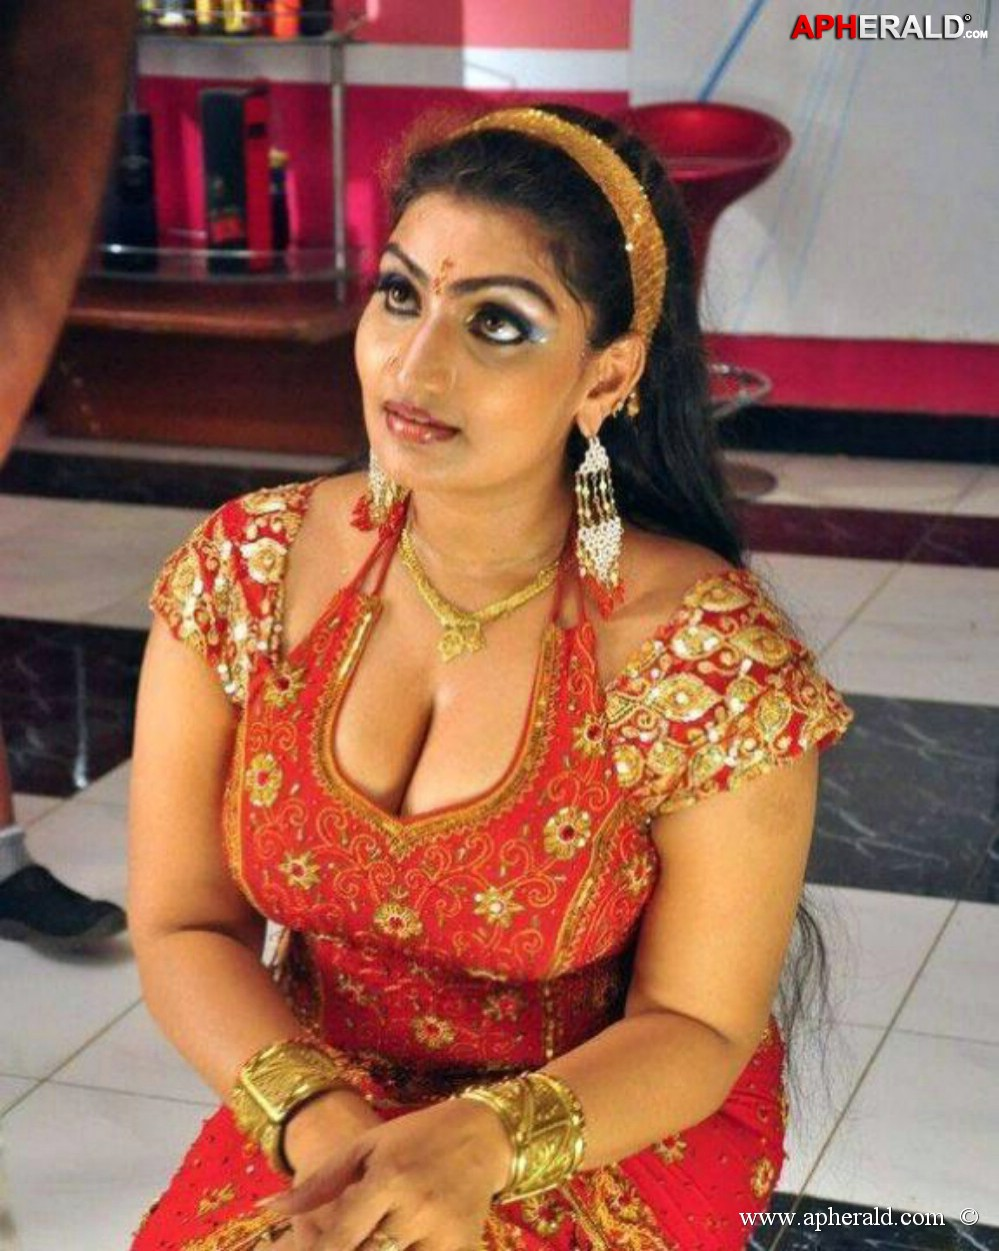 Tamil Hot Aunty Babilona Spicy Photos - Sexy Photolite-1433